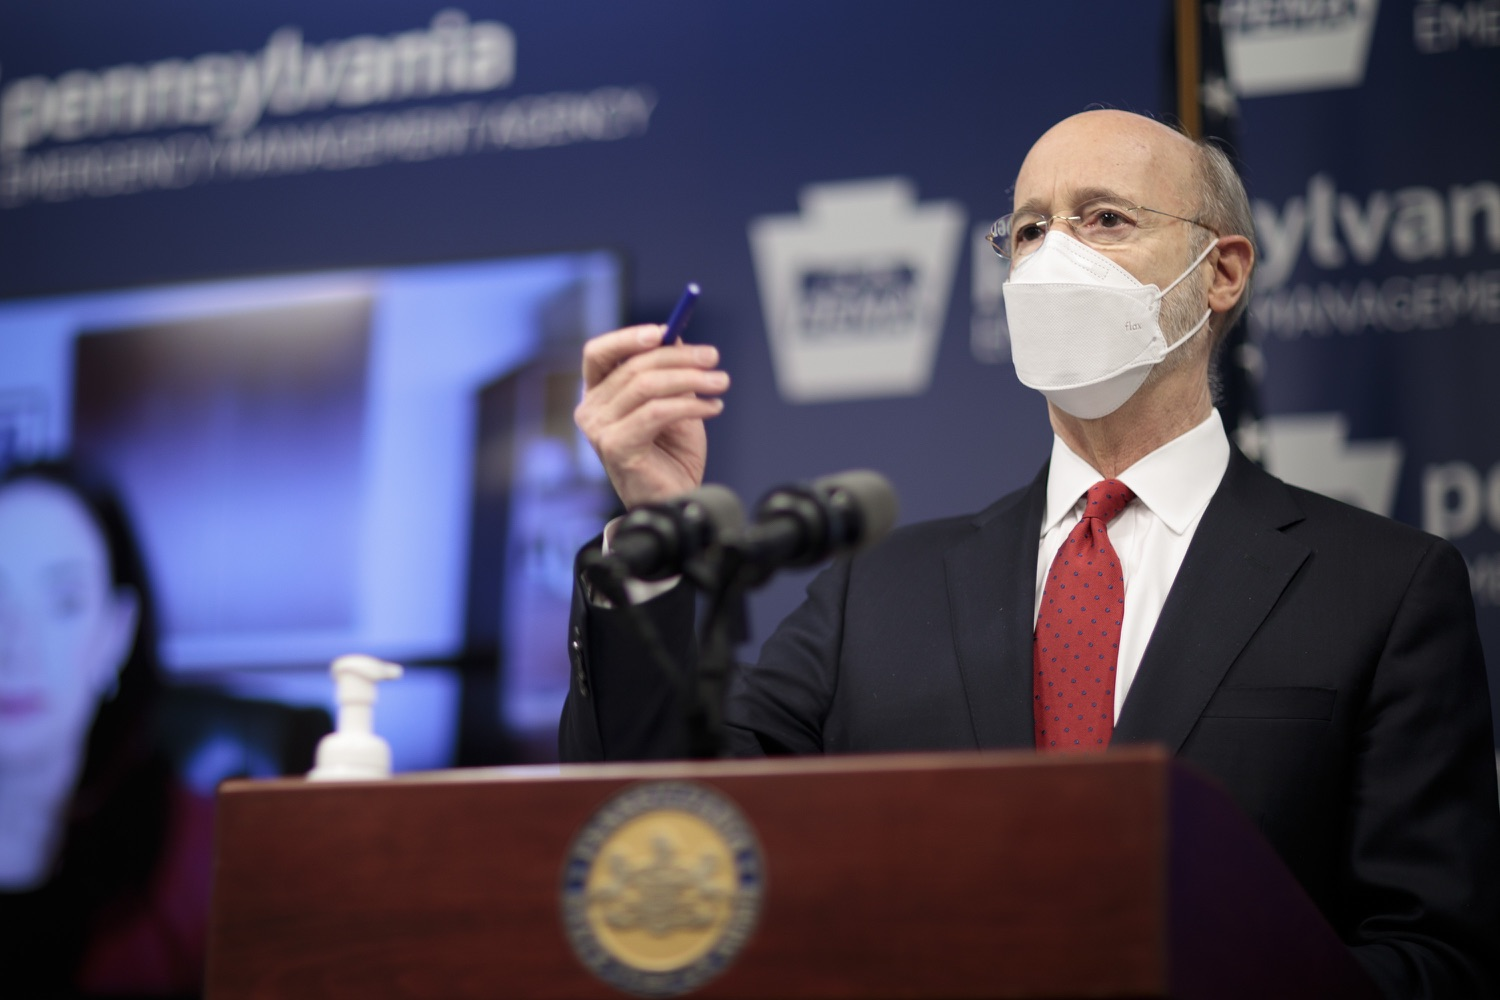 "<a href=""https://filesource.wostreaming.net/commonwealthofpa/photo/18540_gov_backtowork_dz_06.jpg"" target=""_blank"">⇣ Download Photo<br></a>Pennsylvania Governor Tom Wolf speaking at the press conference. The COVID-19 global pandemic has significantly affected Pennsylvania workers, businesses and communities. To bolster economic recovery efforts and position Pennsylvania for economic growth, Governor Tom Wolf today unveiled his Back to Work PA plan.   Harrisburg, PA  February 22, 2021"